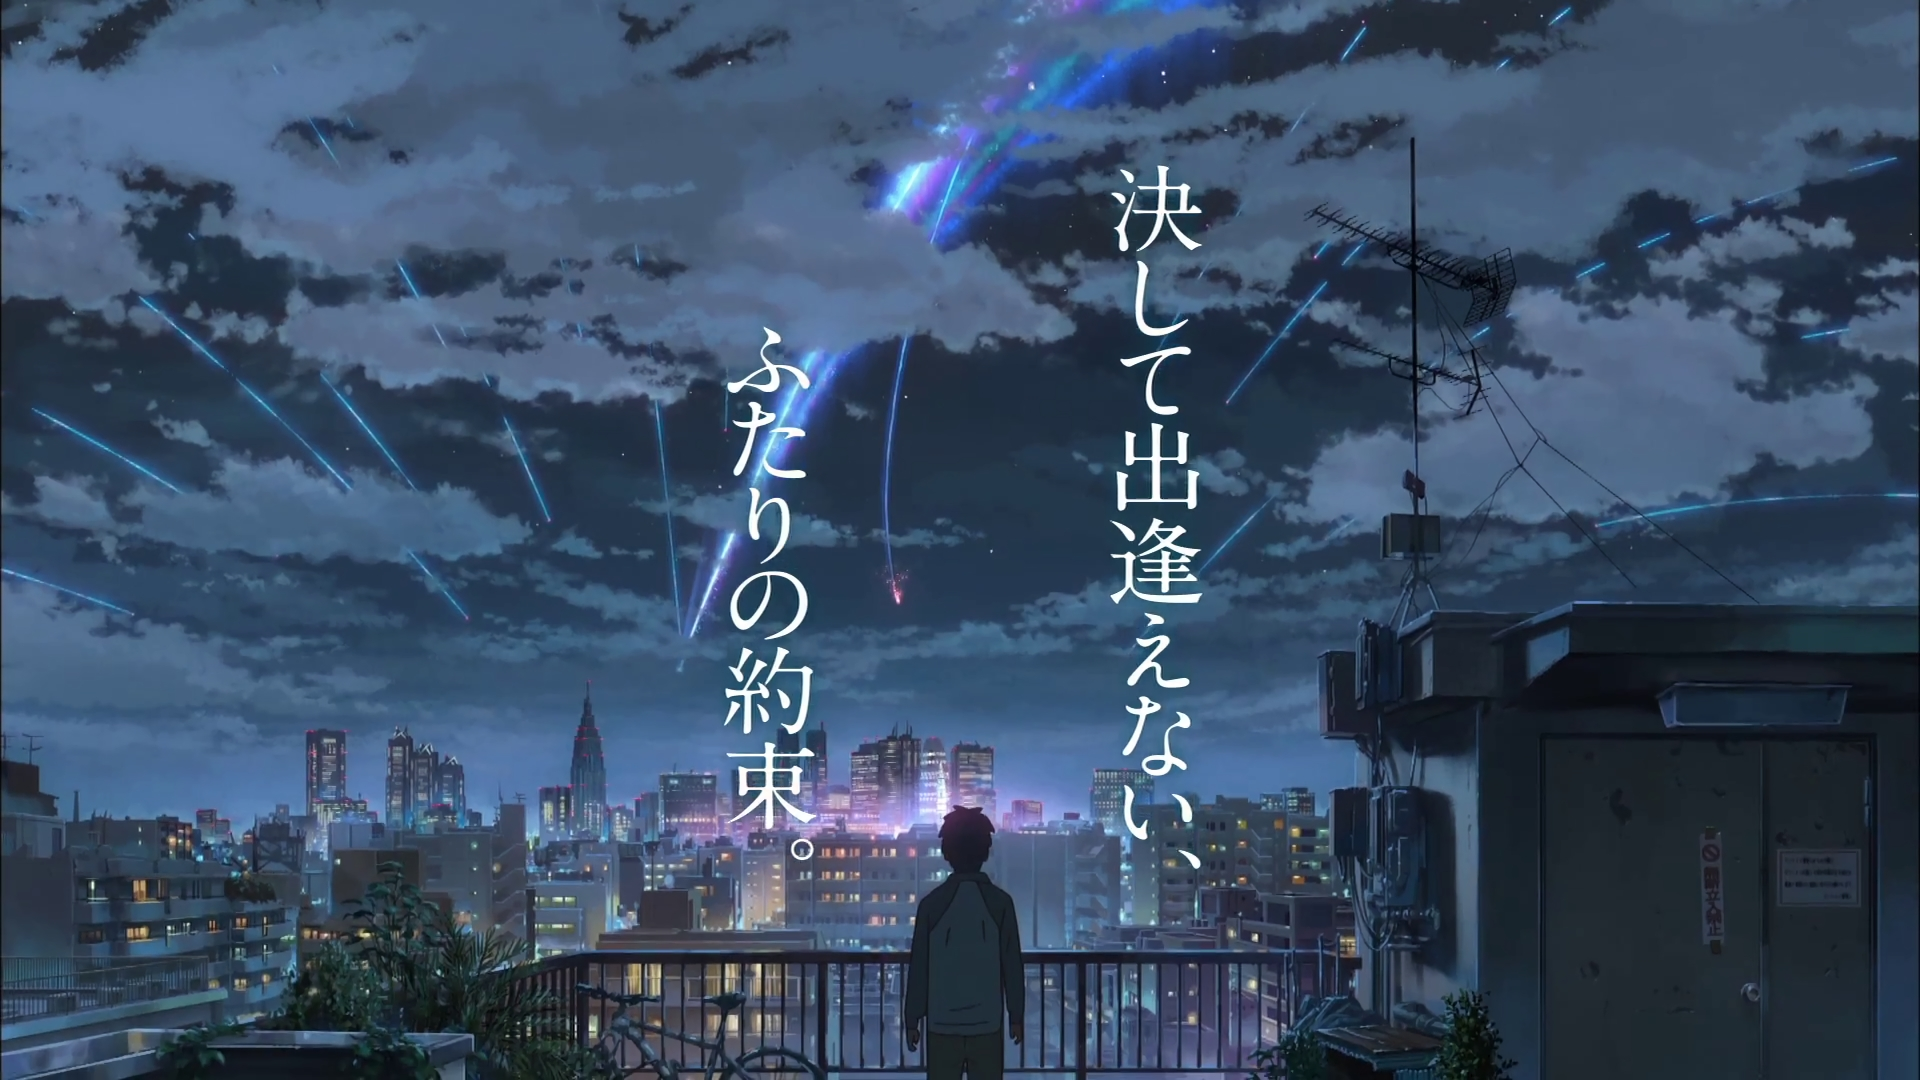 anime - your name. kimi no na wa. taki tachibana wallpaper | 君の名